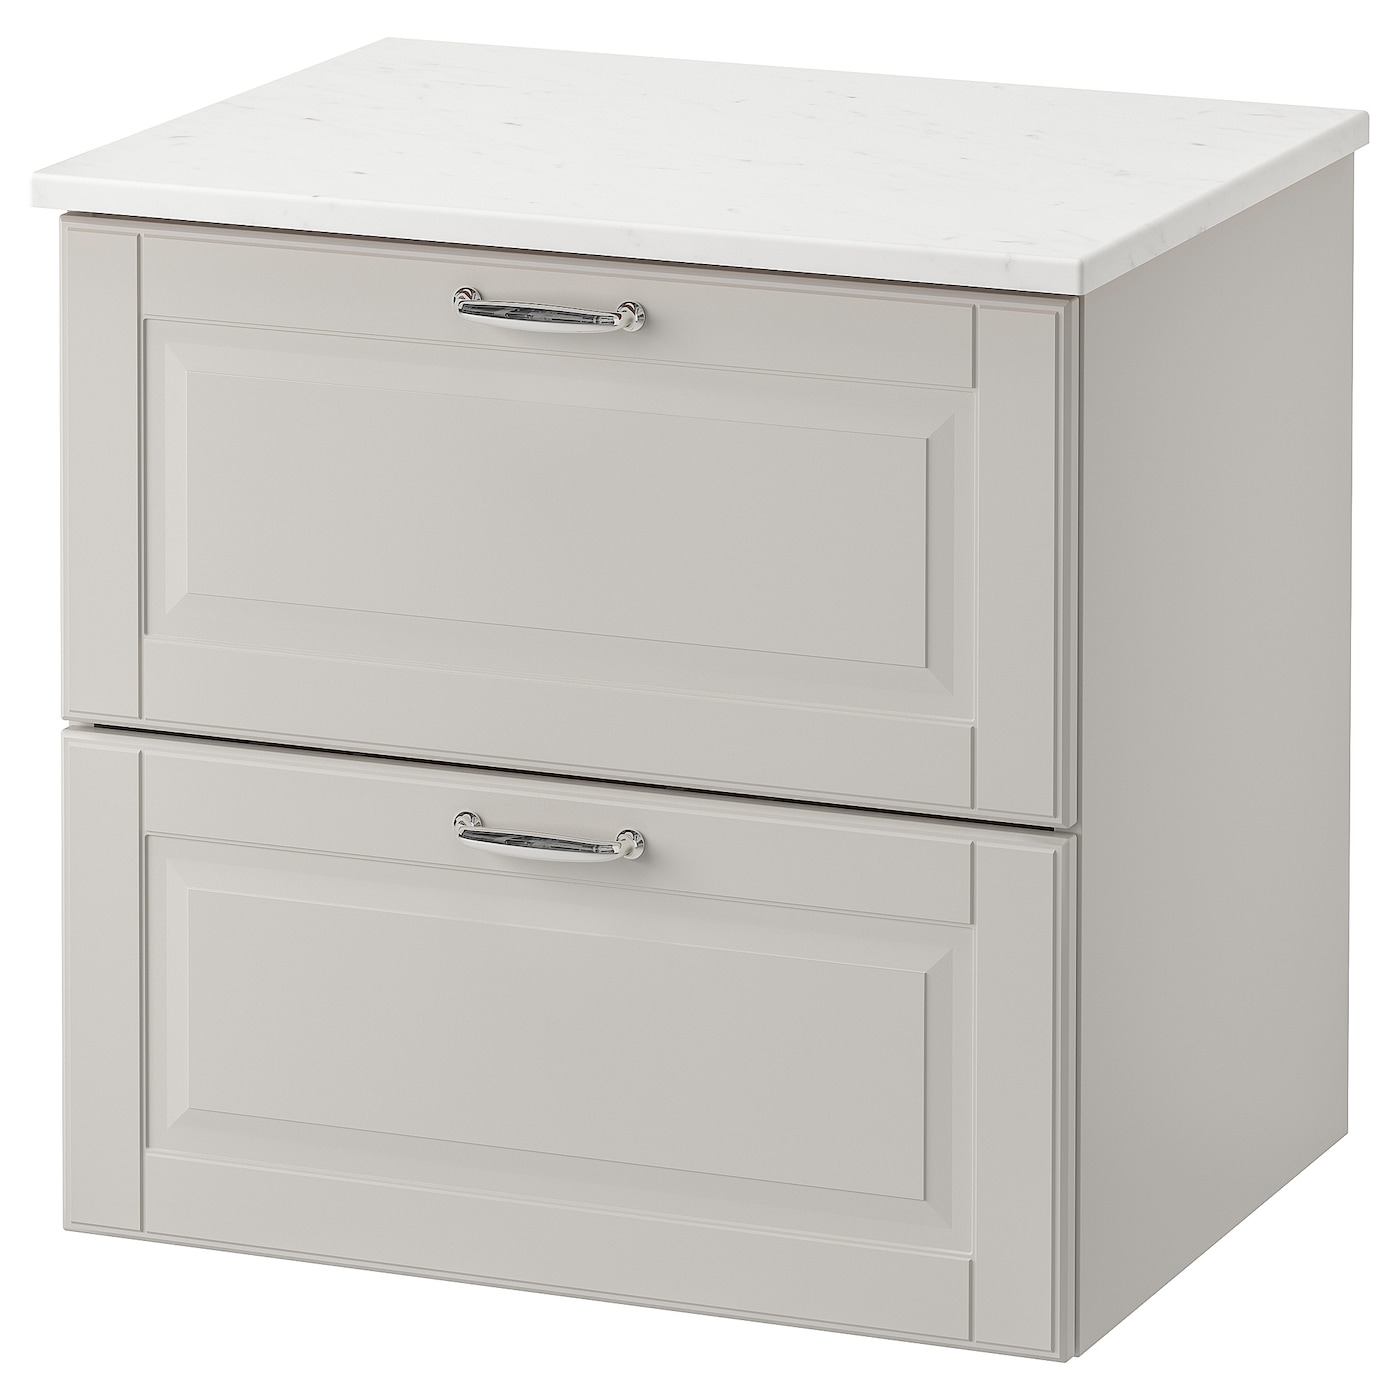 IKEA TOLKEN/GODMORGON wash-stand with 2 drawers